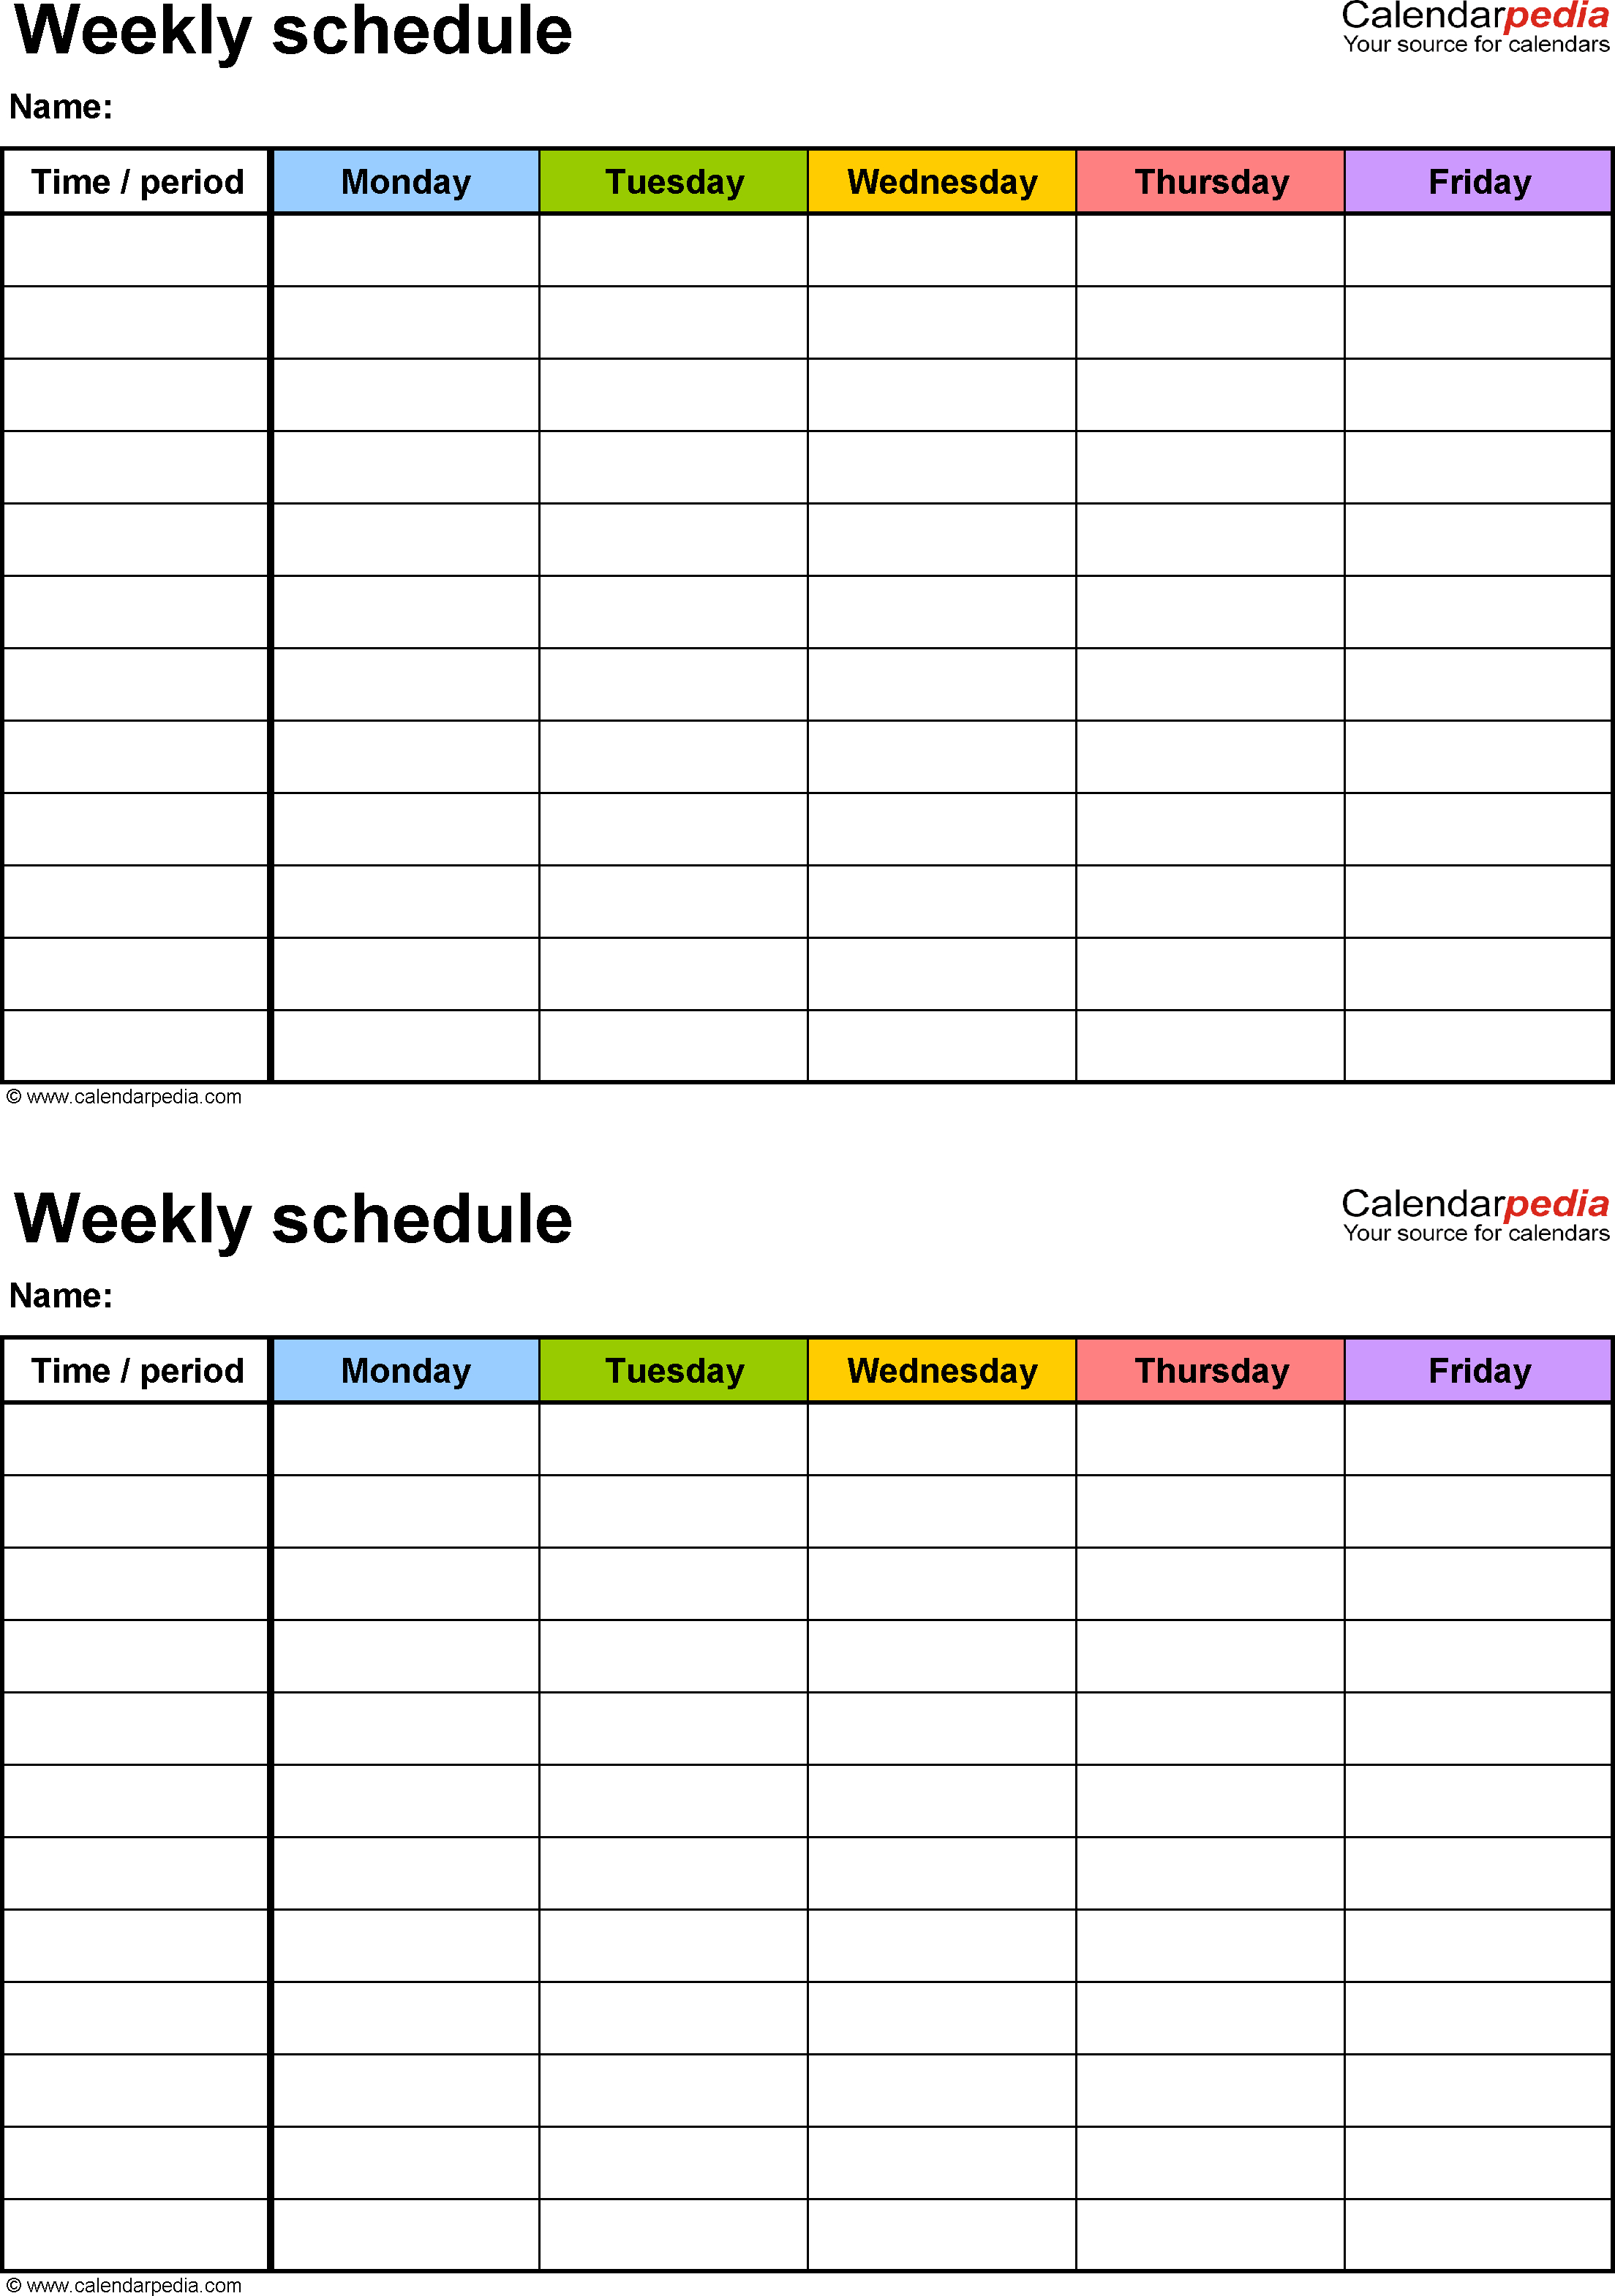 Free Weekly Schedule Templates For Word - 18 Templates - Free Printable Work Schedule Maker